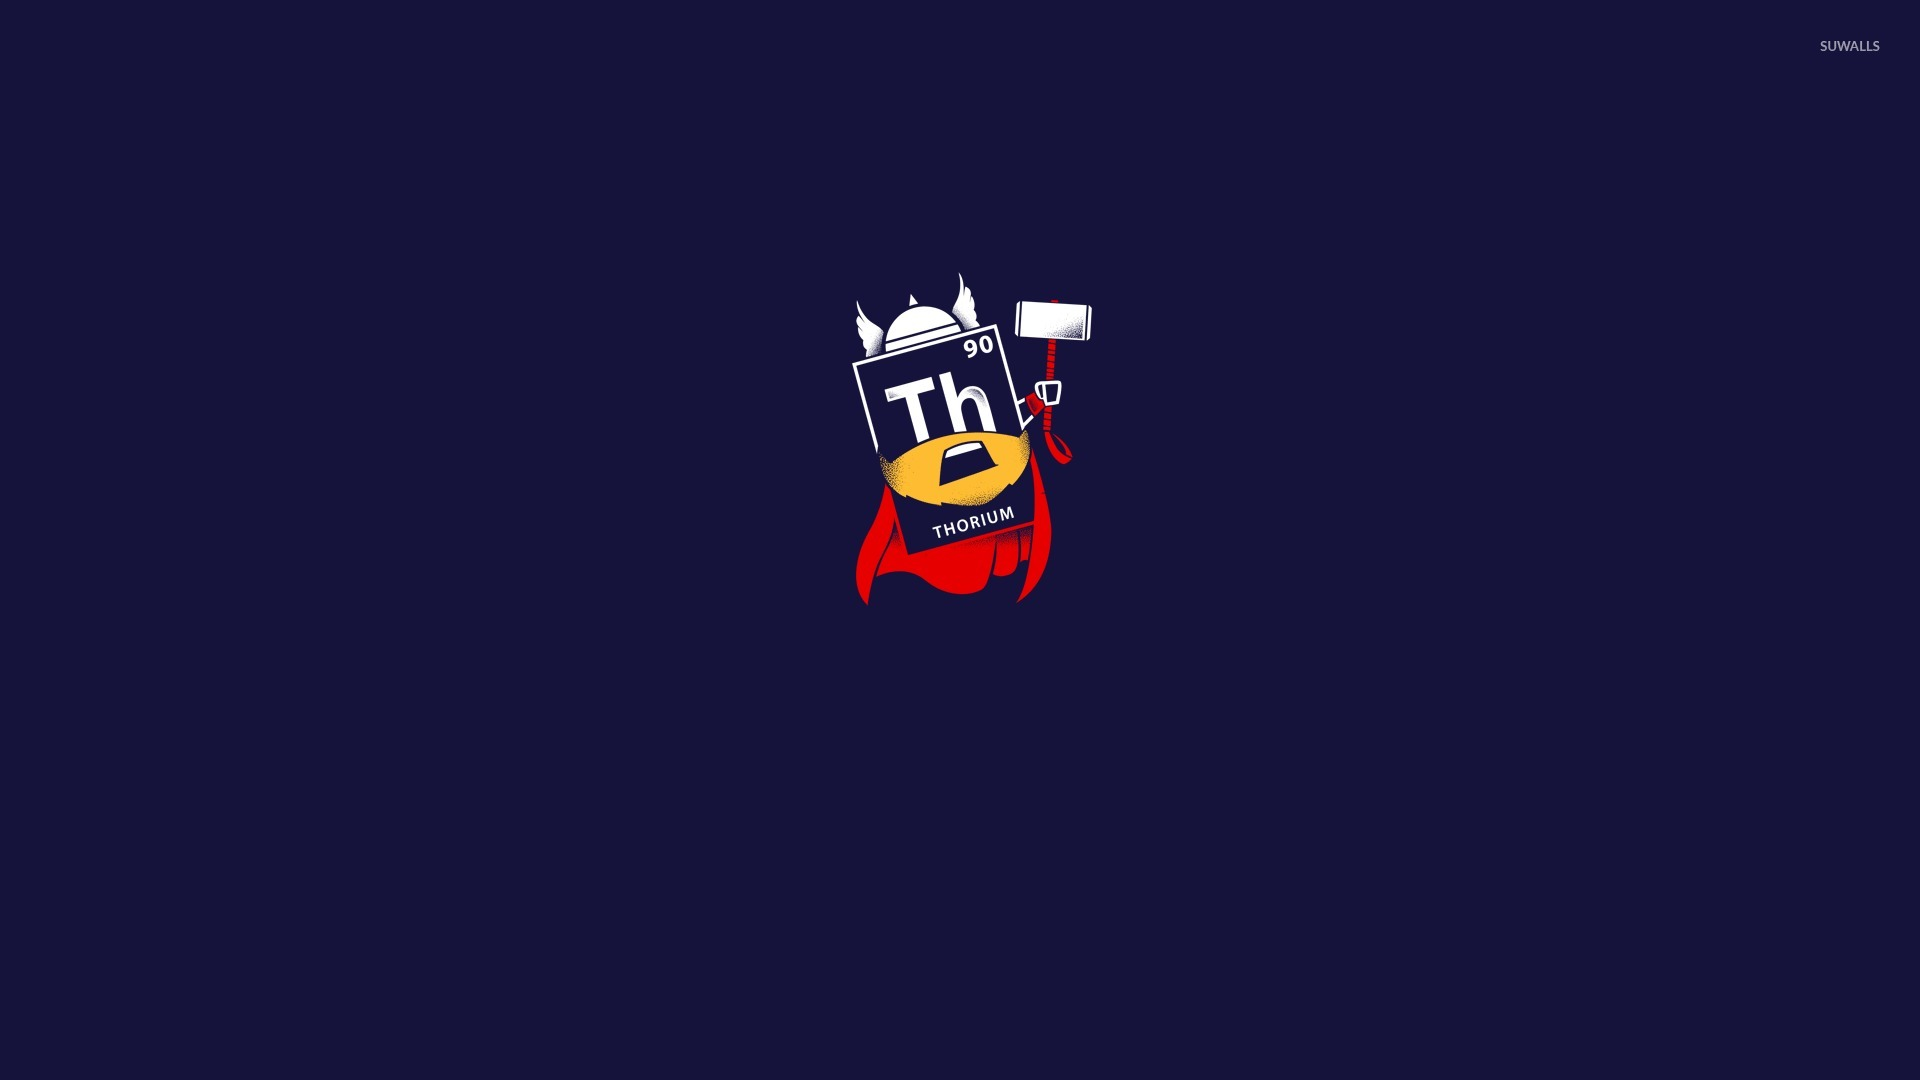 Thorium As Thor Wallpaper